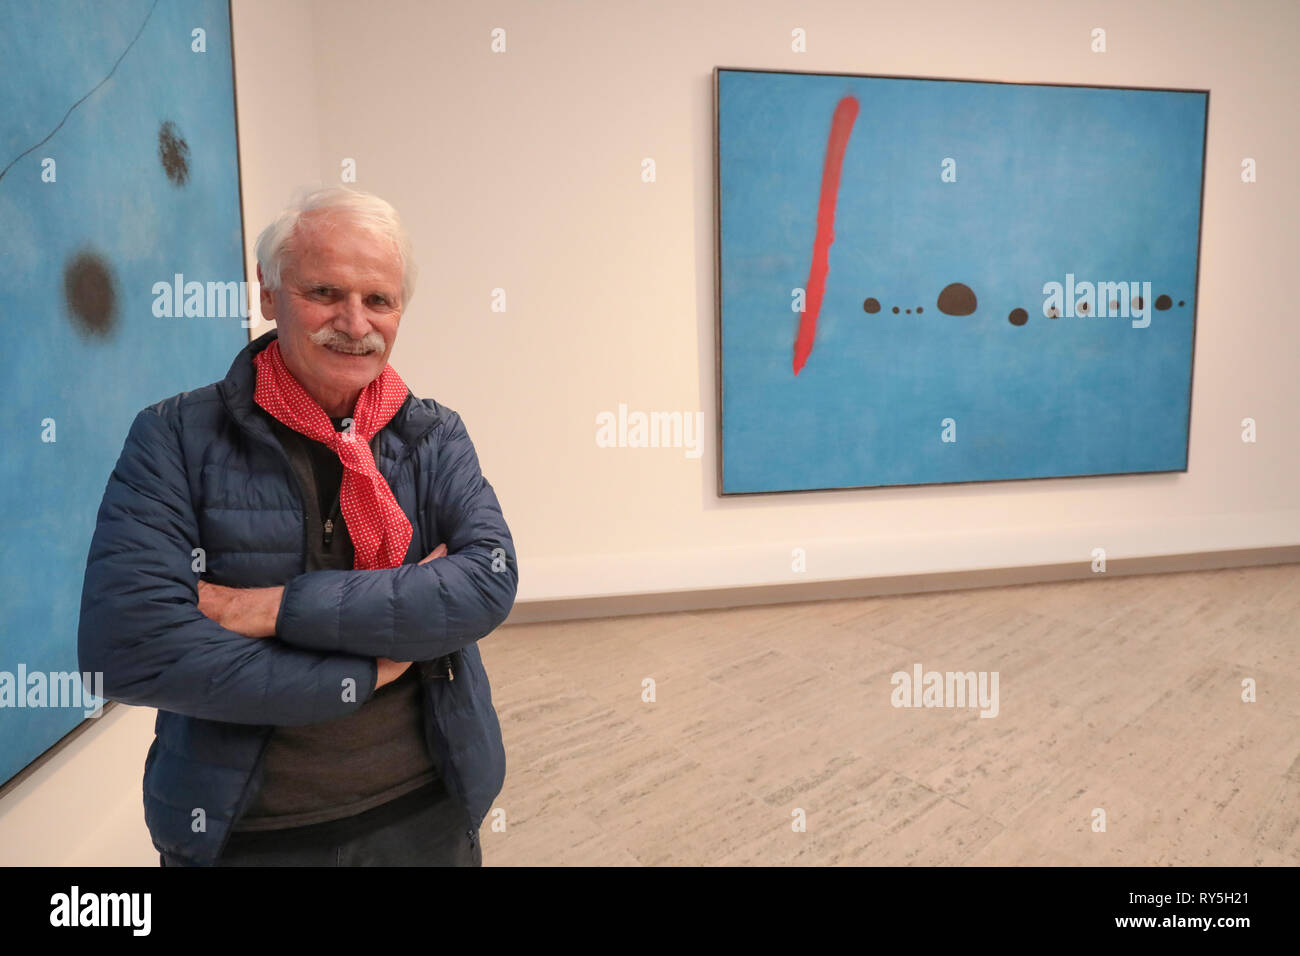 YANN ARTHUS-BERTRAND MIRO'S exhibition   GRAND PALAIS Museum PARIS - Stock Image